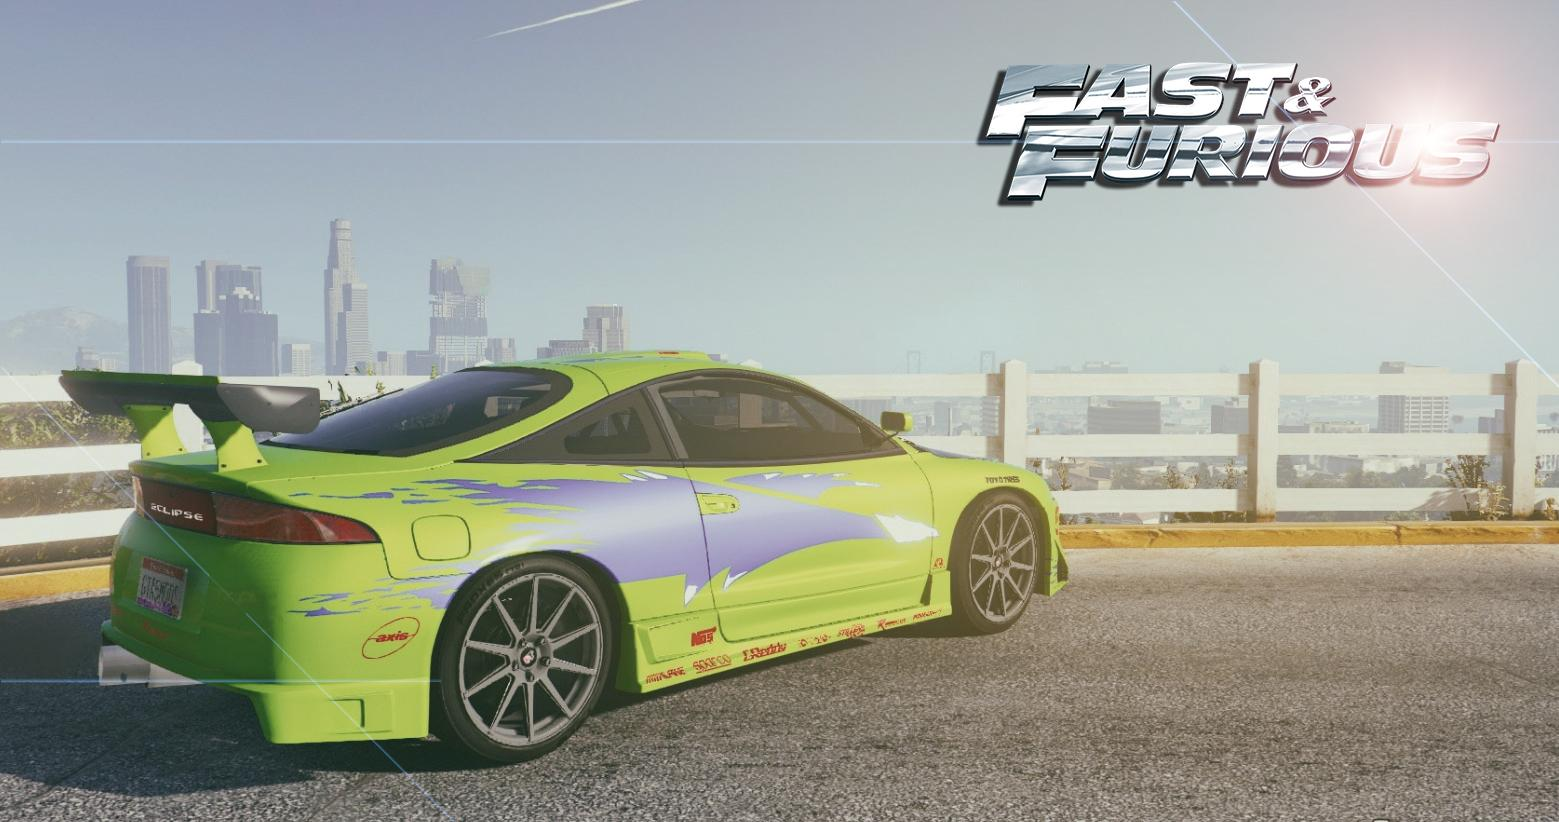 1995 Mitsubishi Eclipse GSX The Fast and the Furious ...